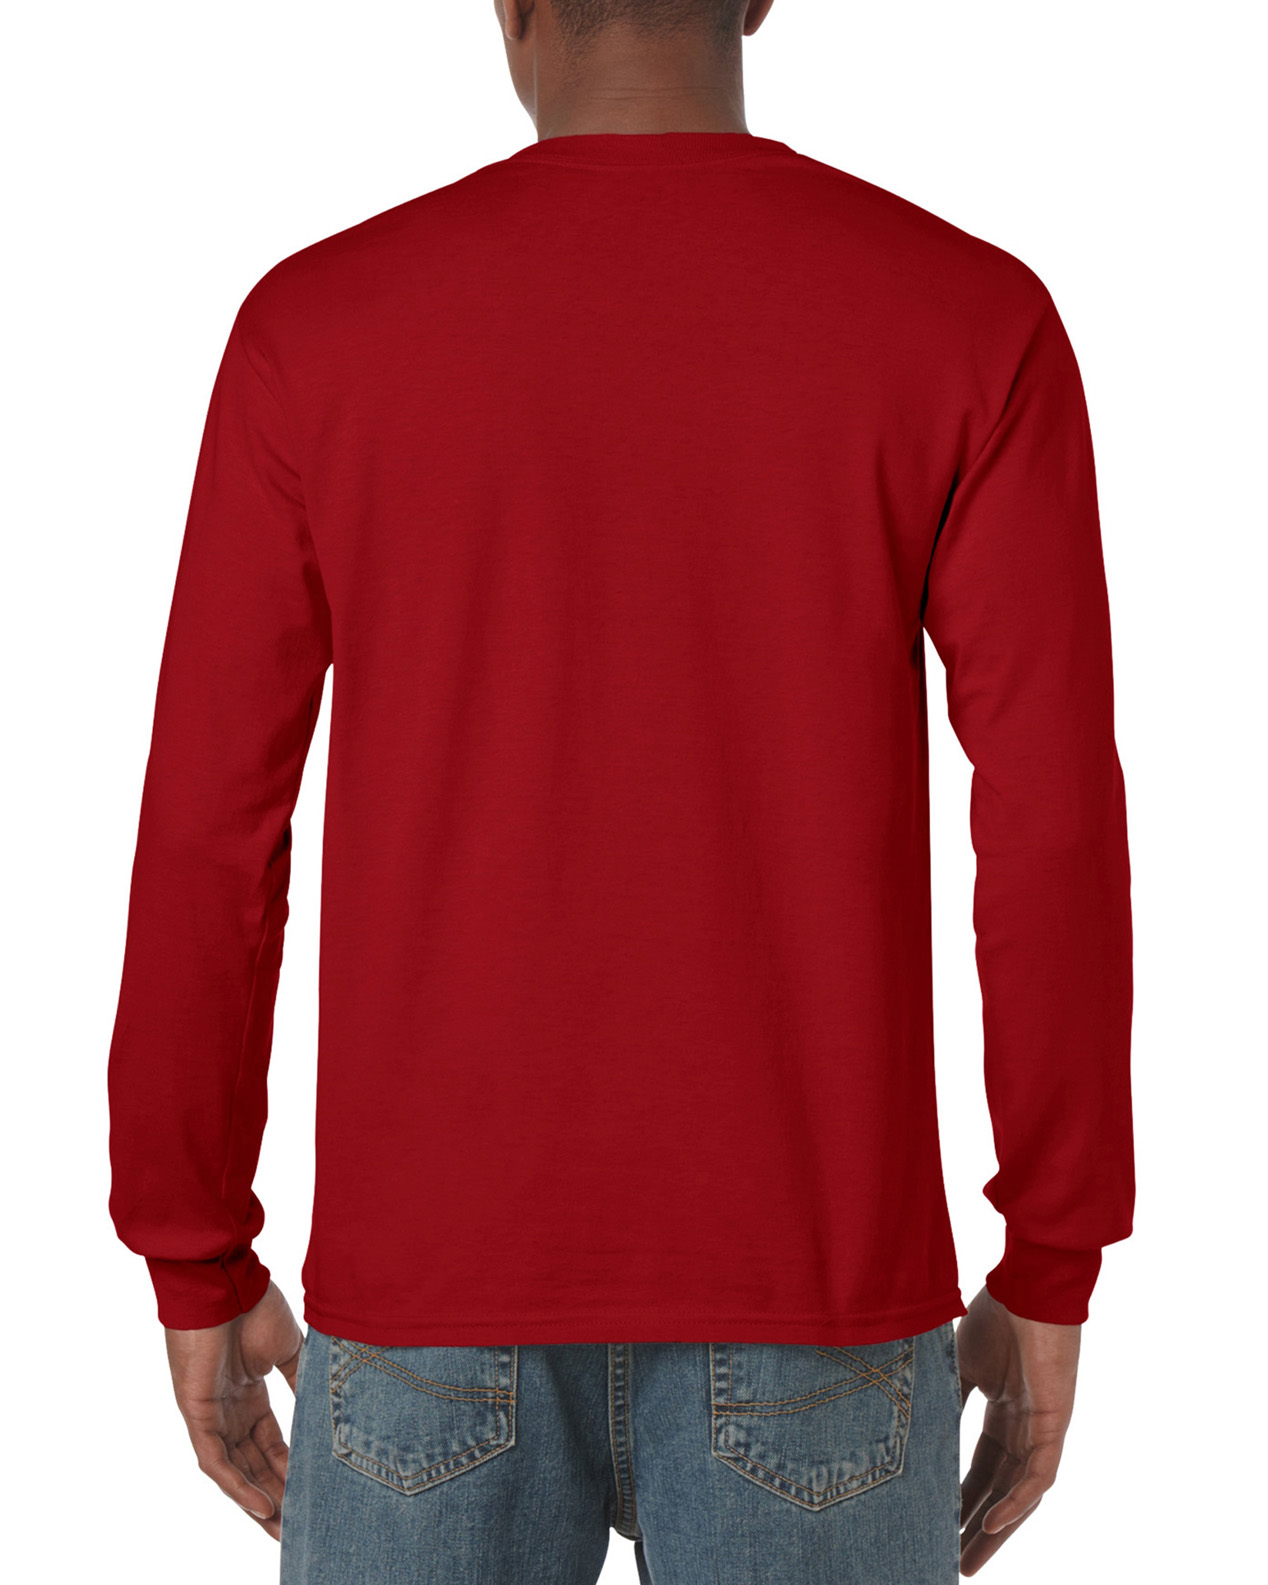 5400 | Gildan® Heavy Cotton™ | 5.3 oz/yd² | Adult Long Sleeve T ...